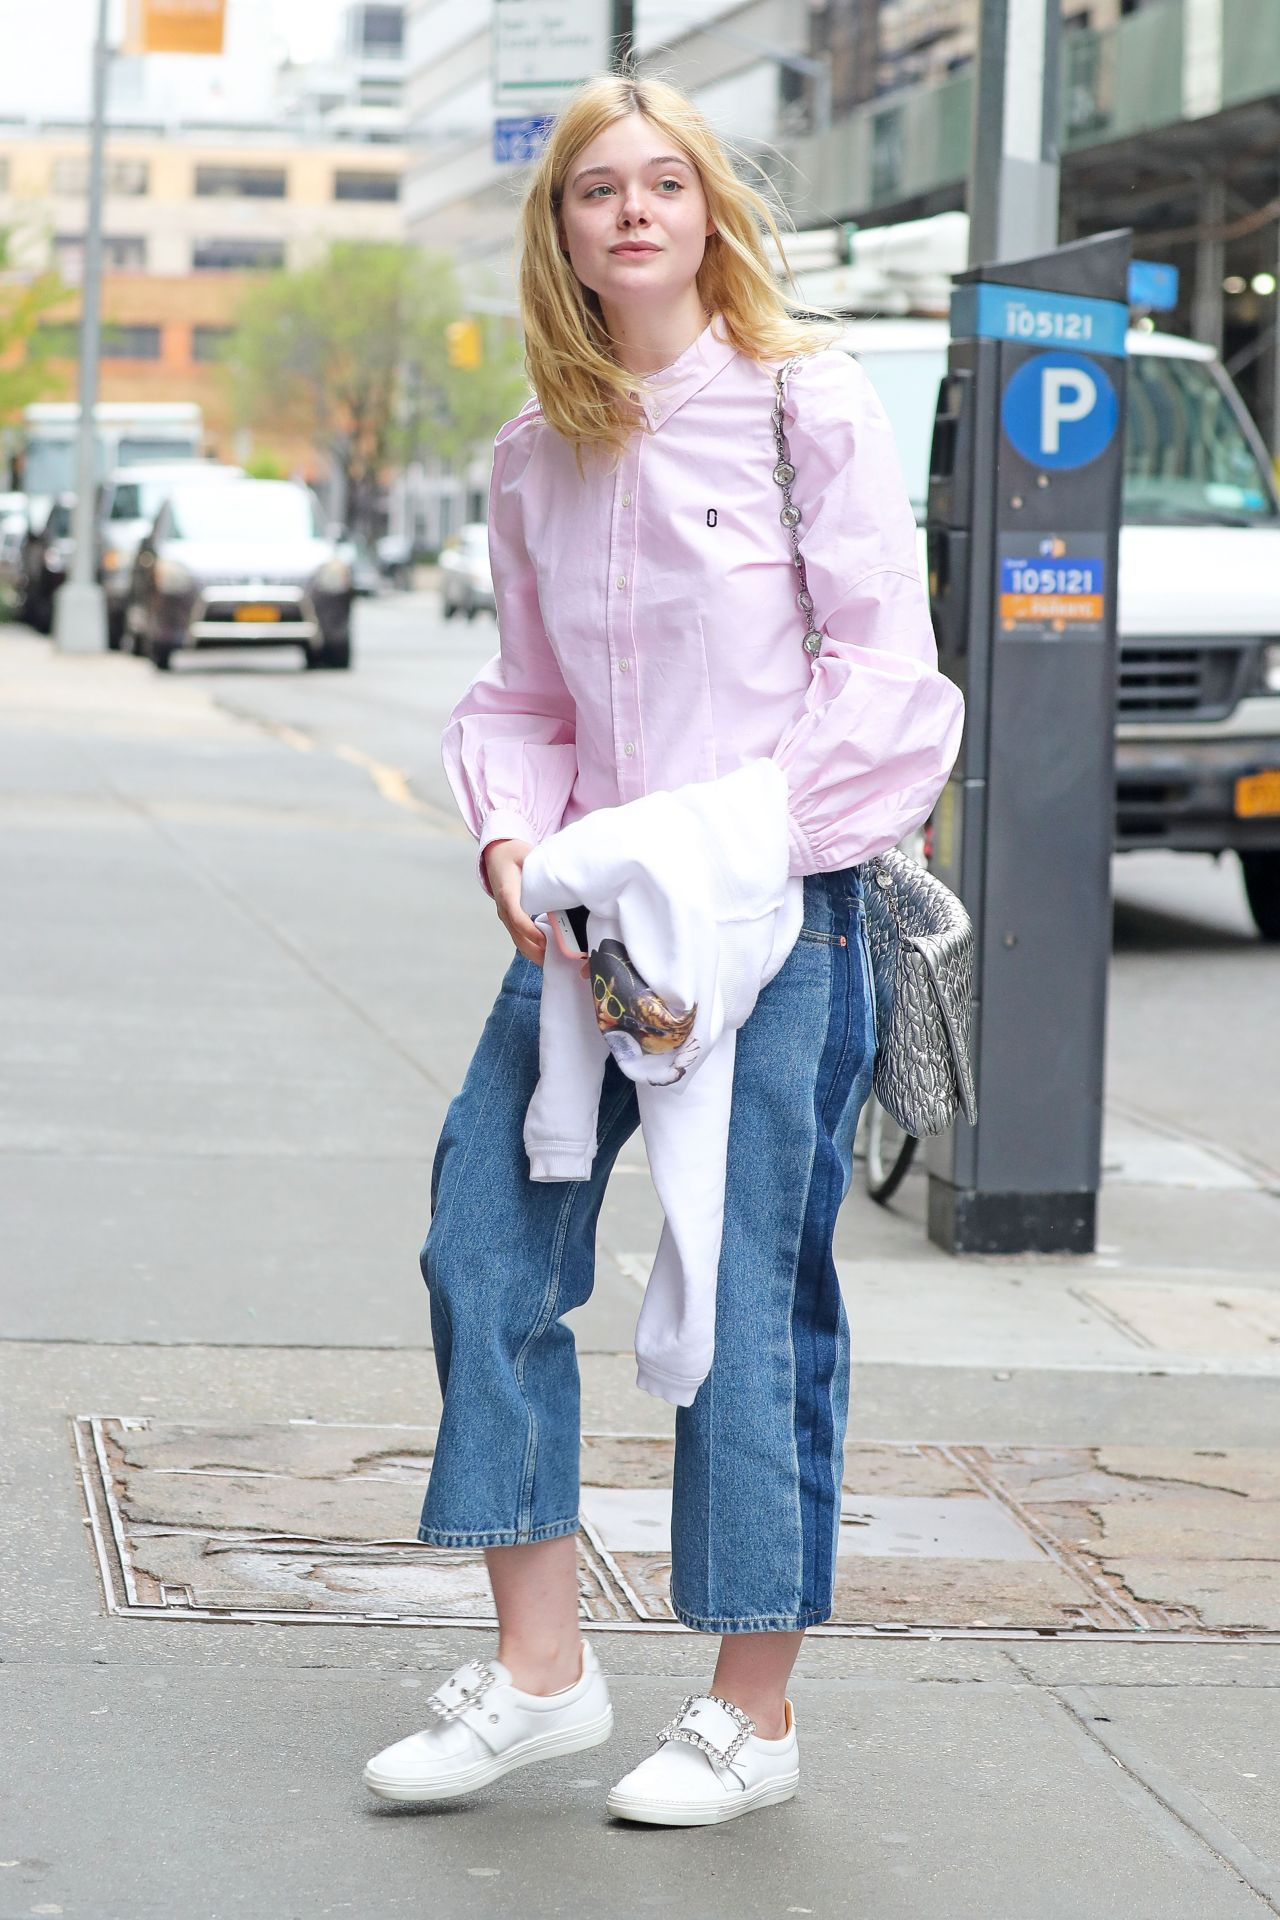 Elle Fanning Street Style - Heading to the Studio in SoHo, NYC 4/22/2017